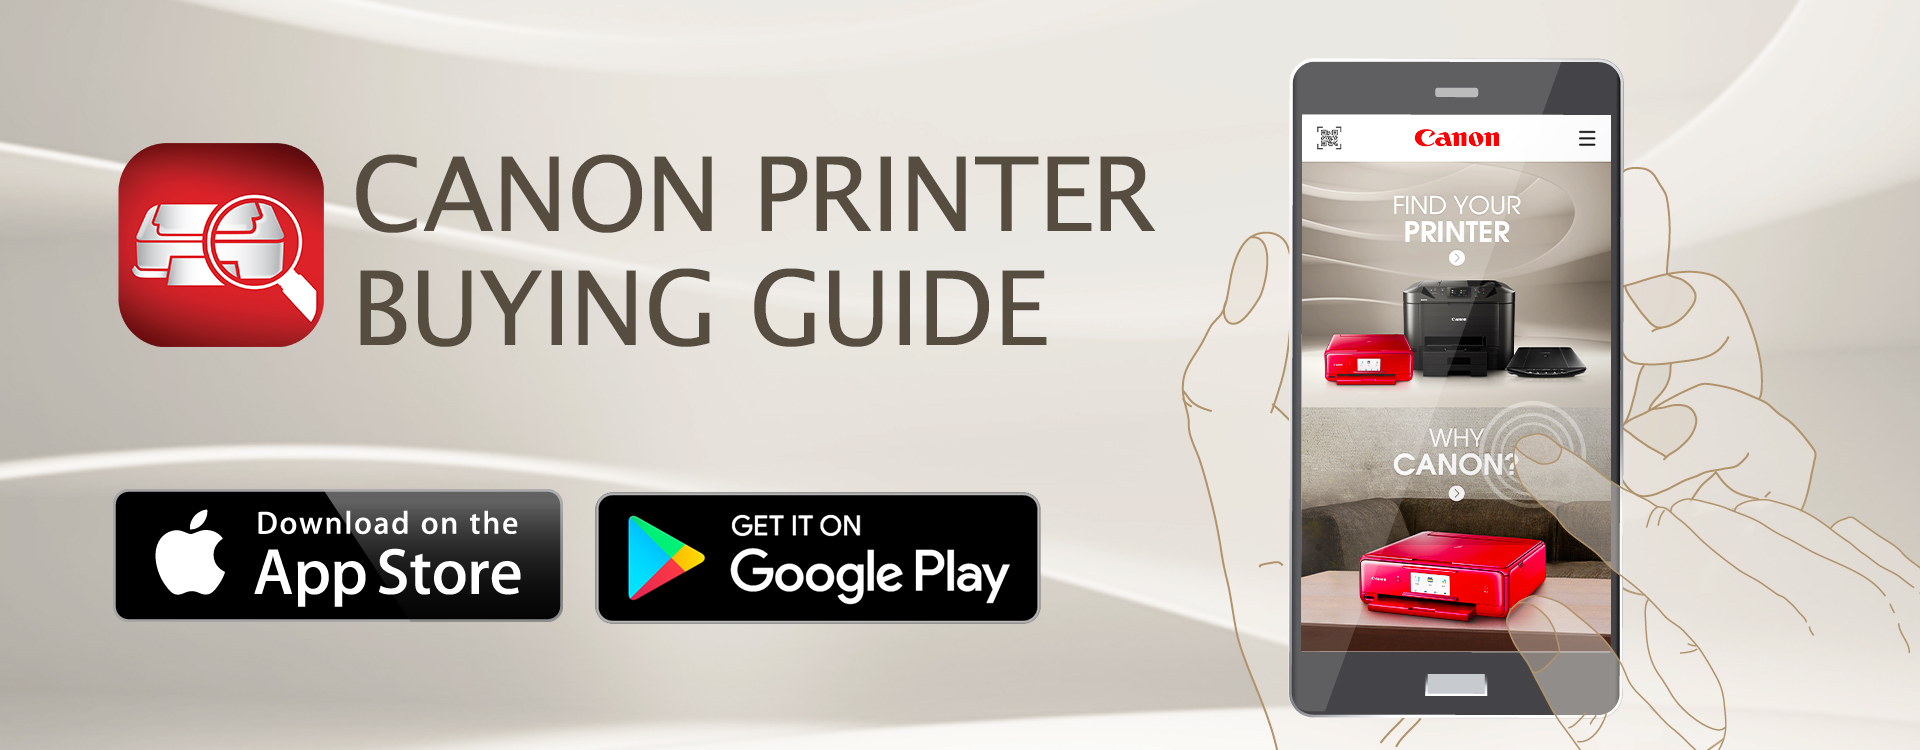 Canon Printer Buying Guide_1920x750_banner_v1